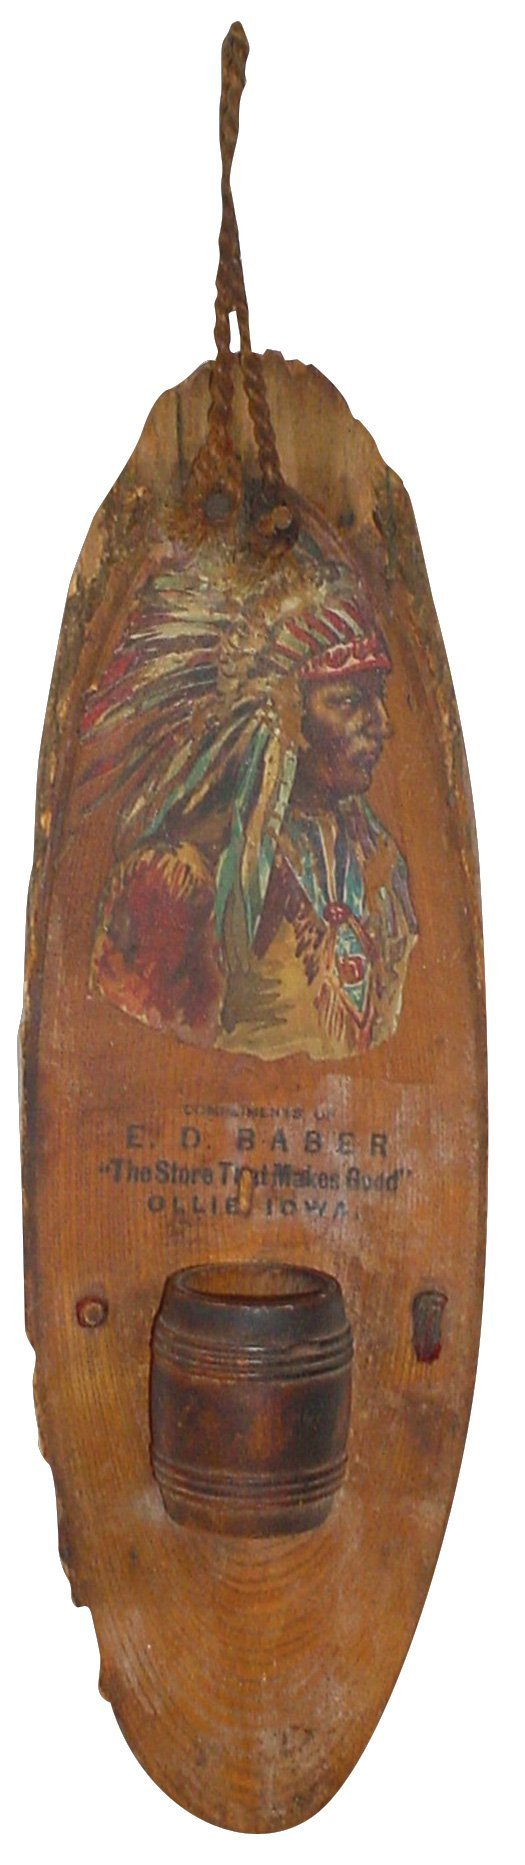 764: Advertising match holder with Indian for E.D. Babe